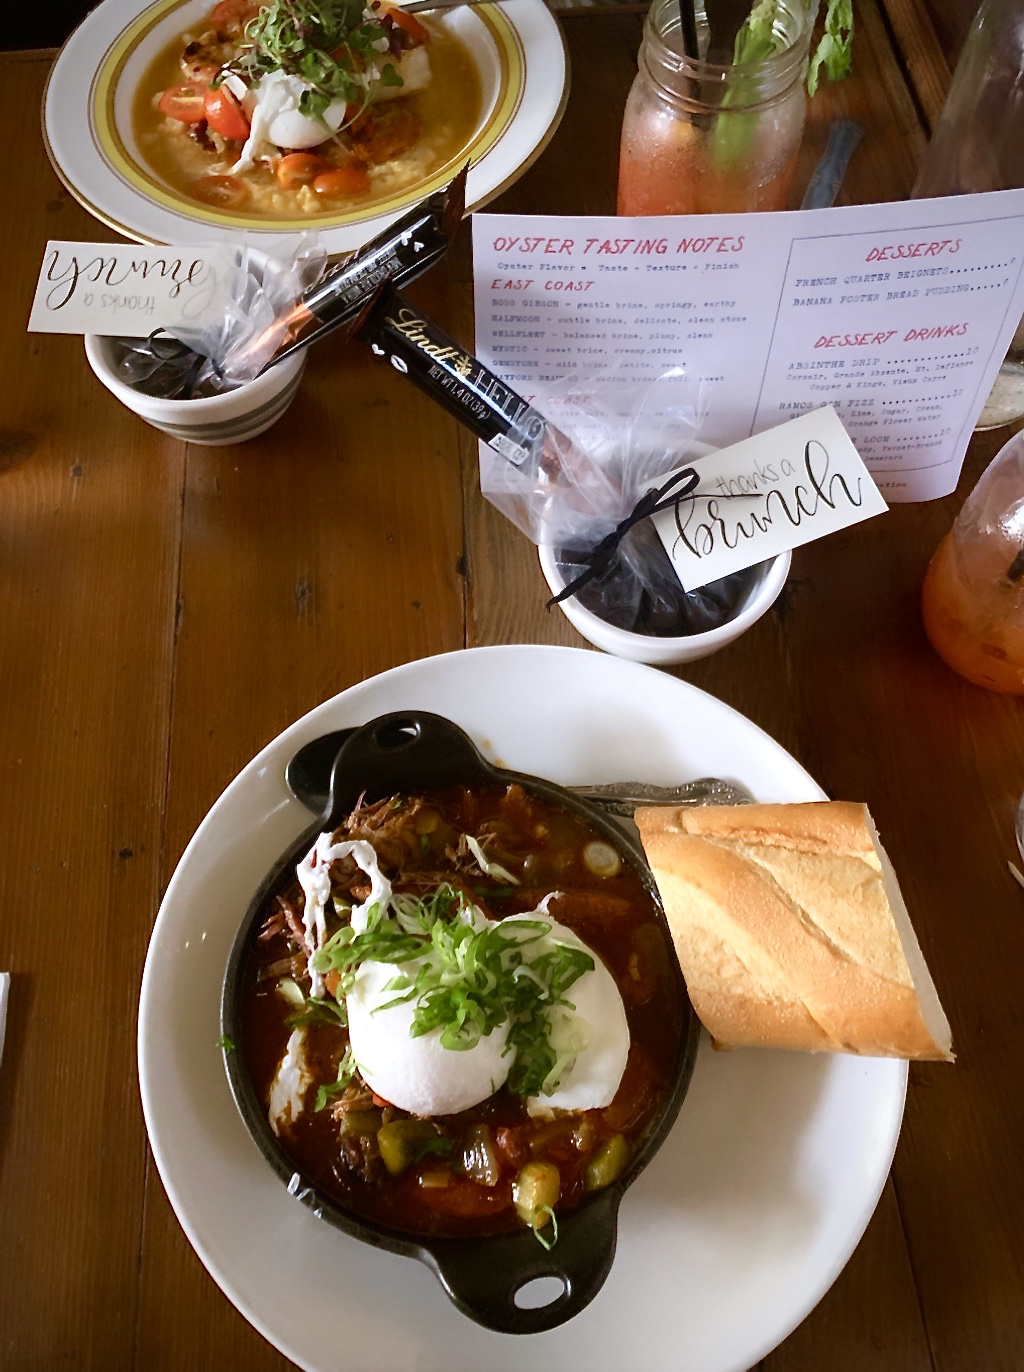 Poached egg braised beef and Bloody Mary brunch